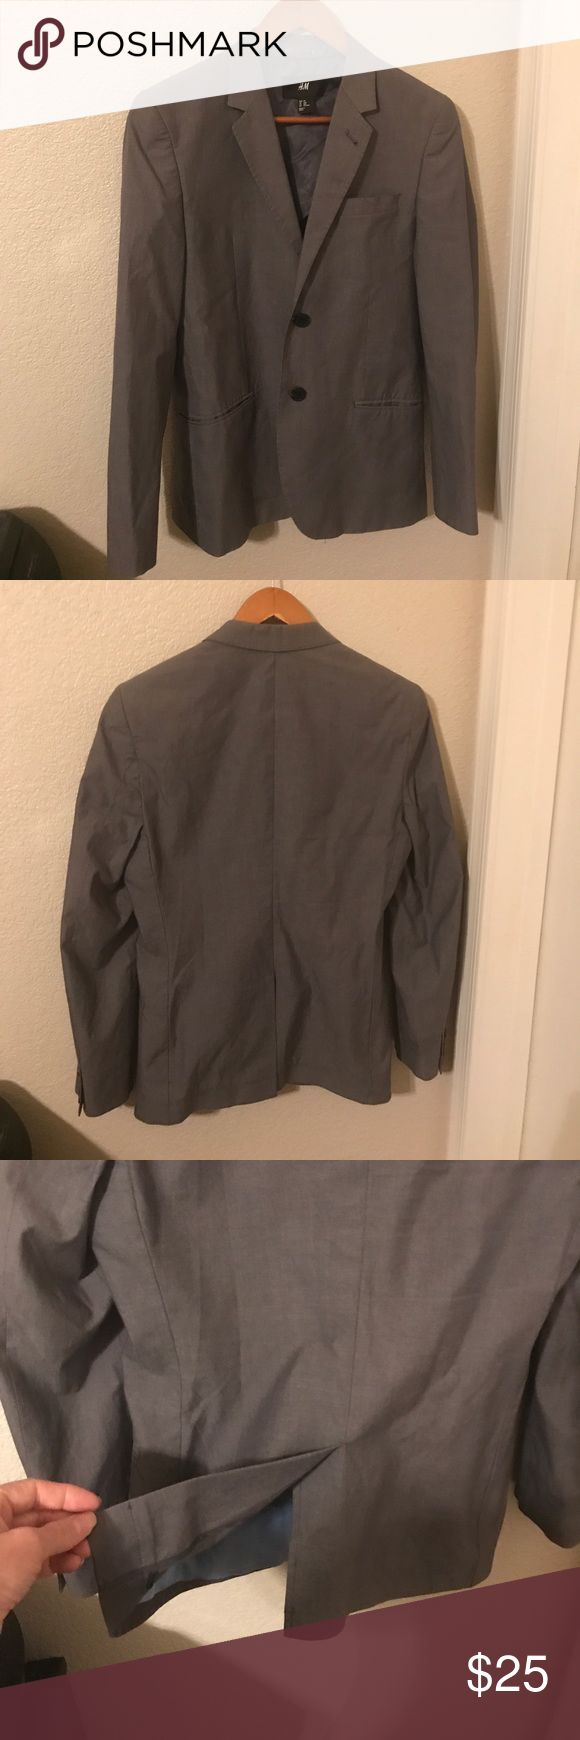 Men's Casual Suit Jacket Men's casual suit jacket. Partially lined. 2 inside pockets & 3 outside pockets. 2 buttons in front. Center opening in back. 4 buttons each sleeve. Grayish brown color broadcloth type lightweight fabric. No fabric content noted that I could see. Previously worn, good condition. H&M Suits & Blazers Sport Coats & Blazers